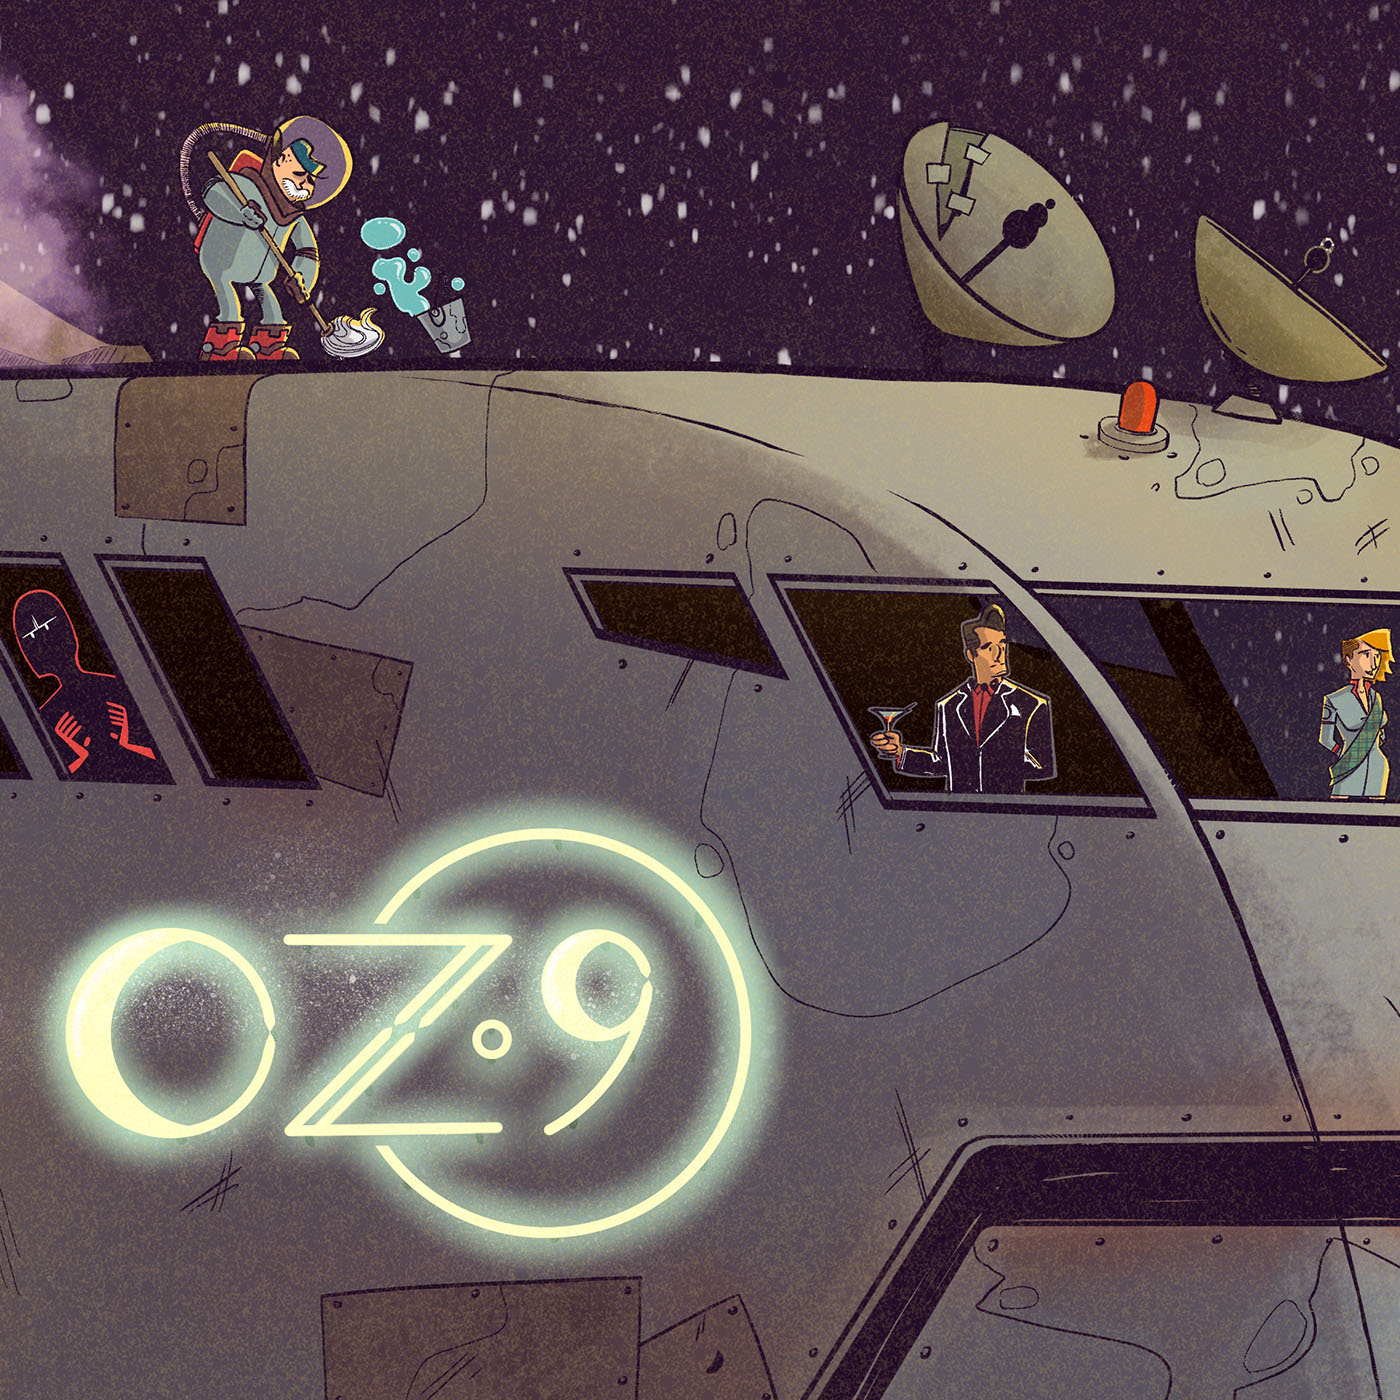 """Oz 9"" Podcast"